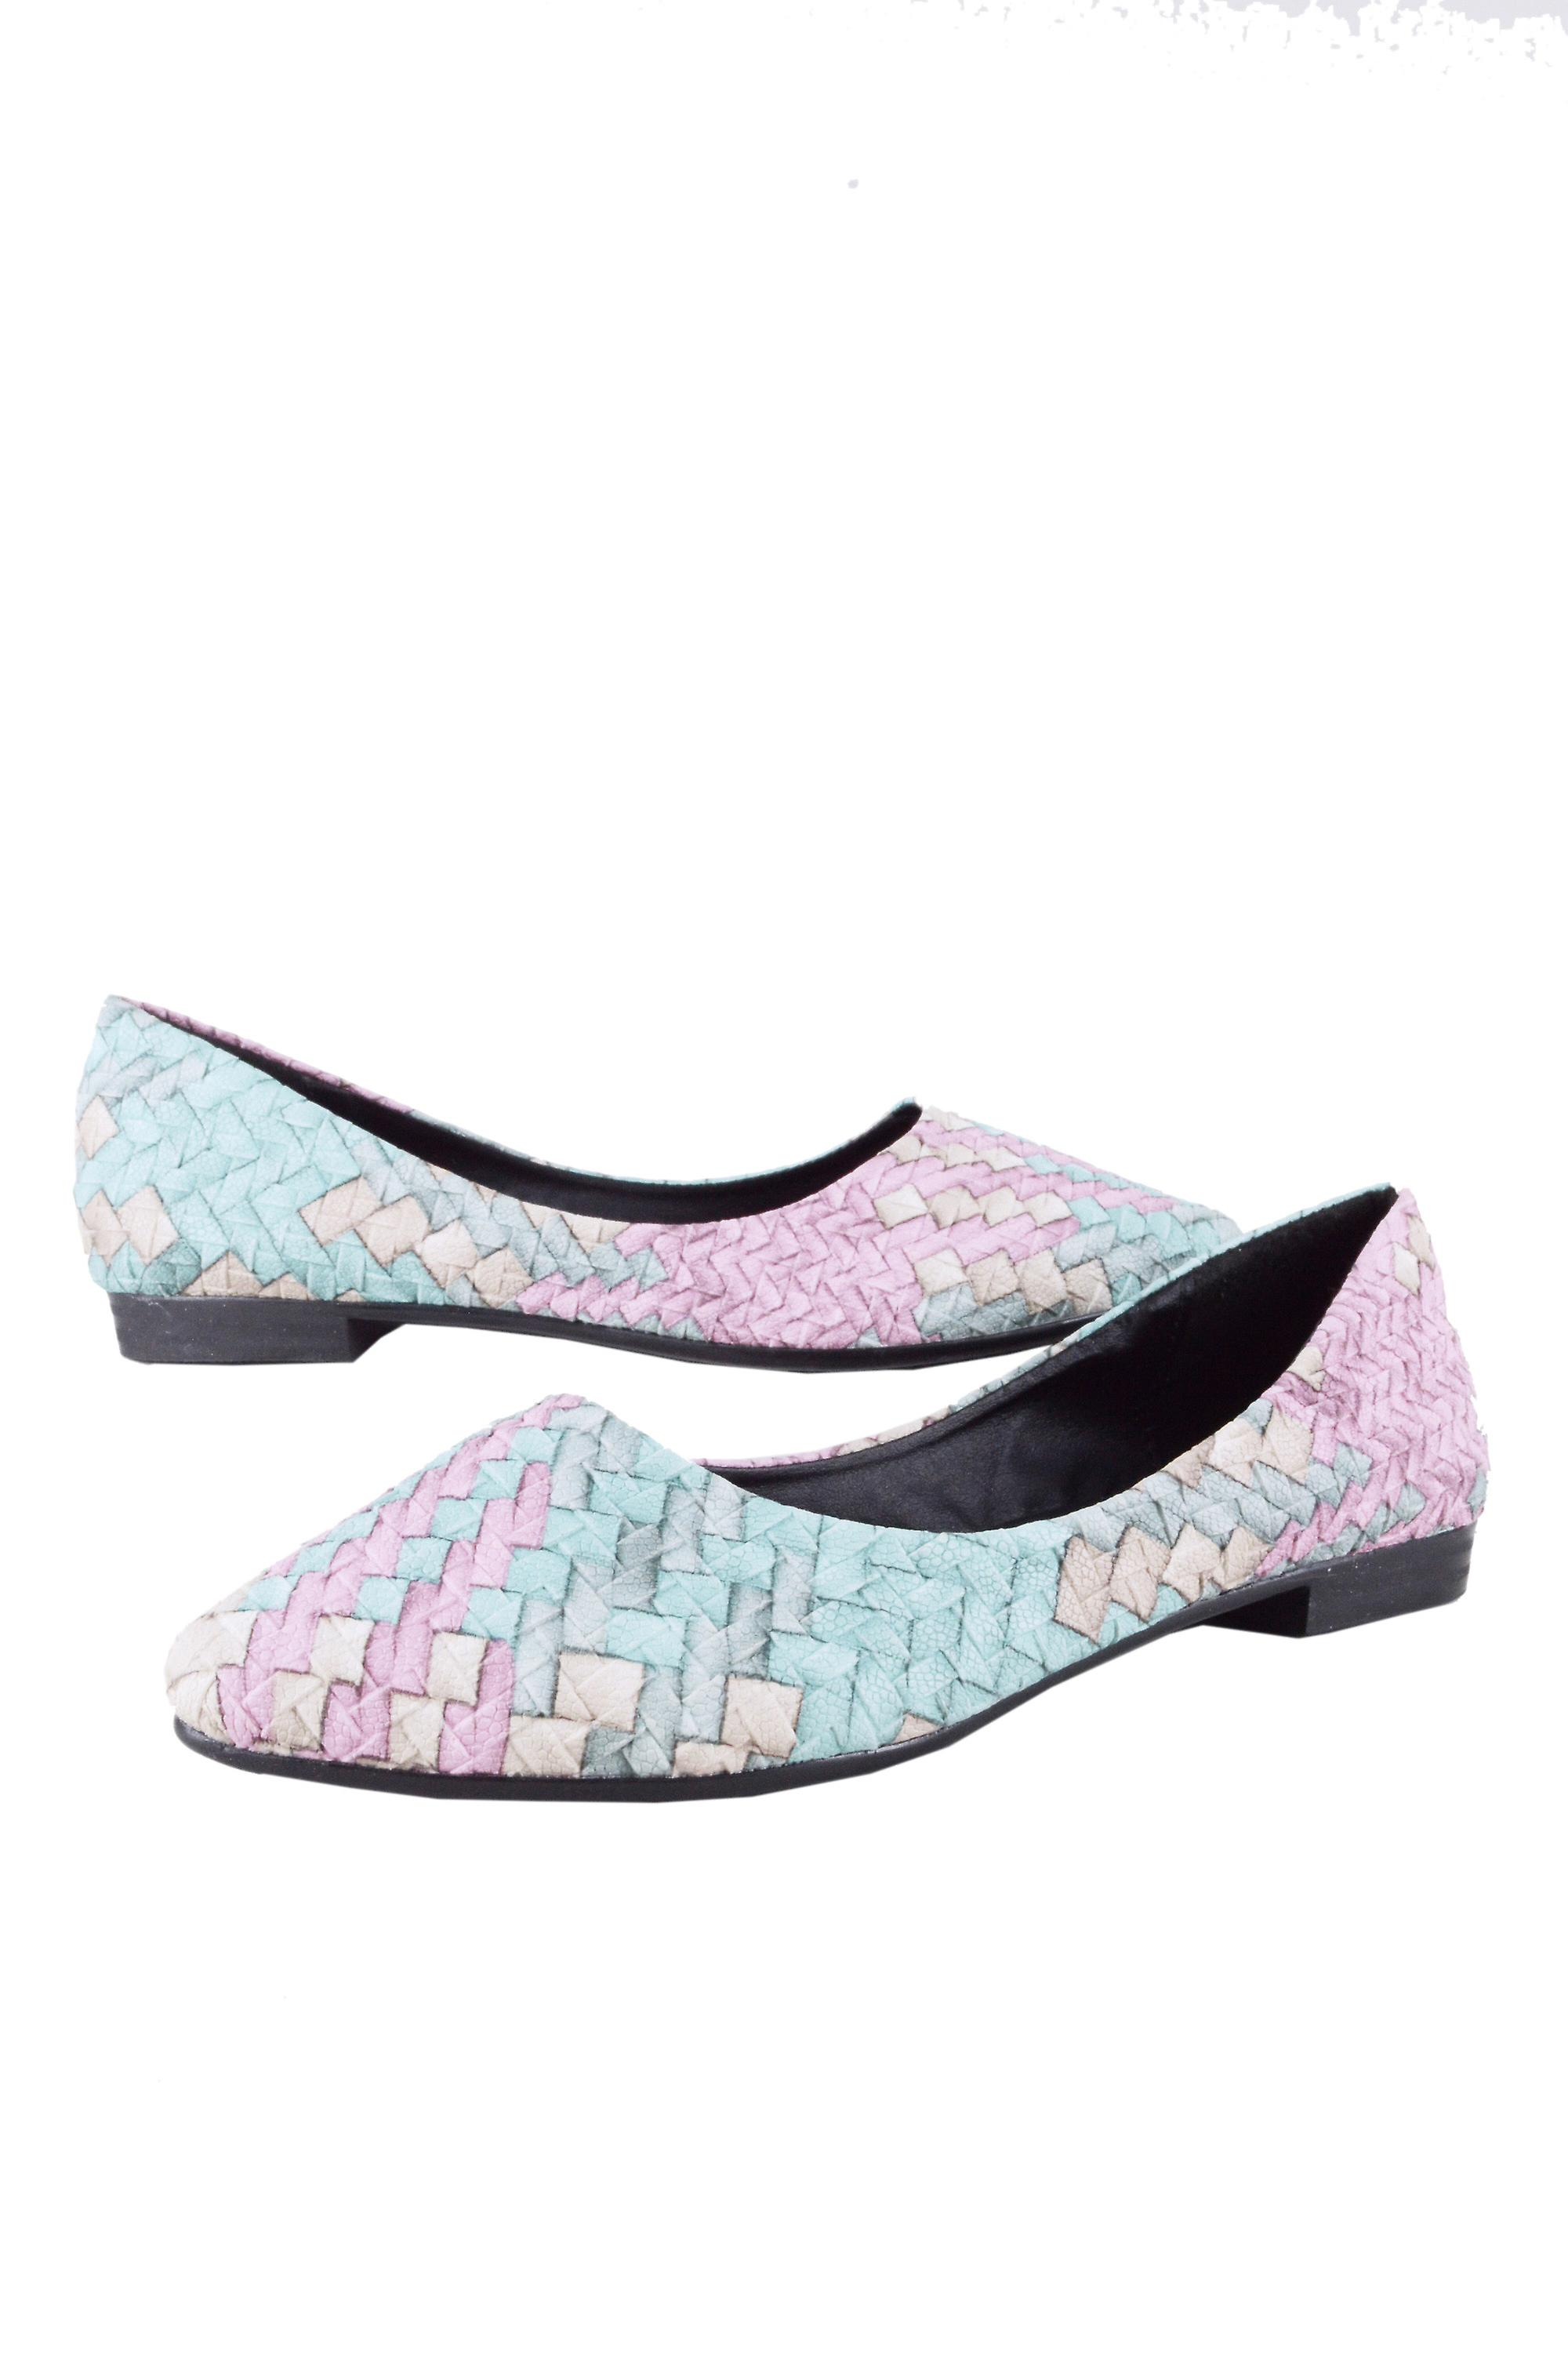 Lovemystyle Pastel Ballerina Pumps With Weave Texture